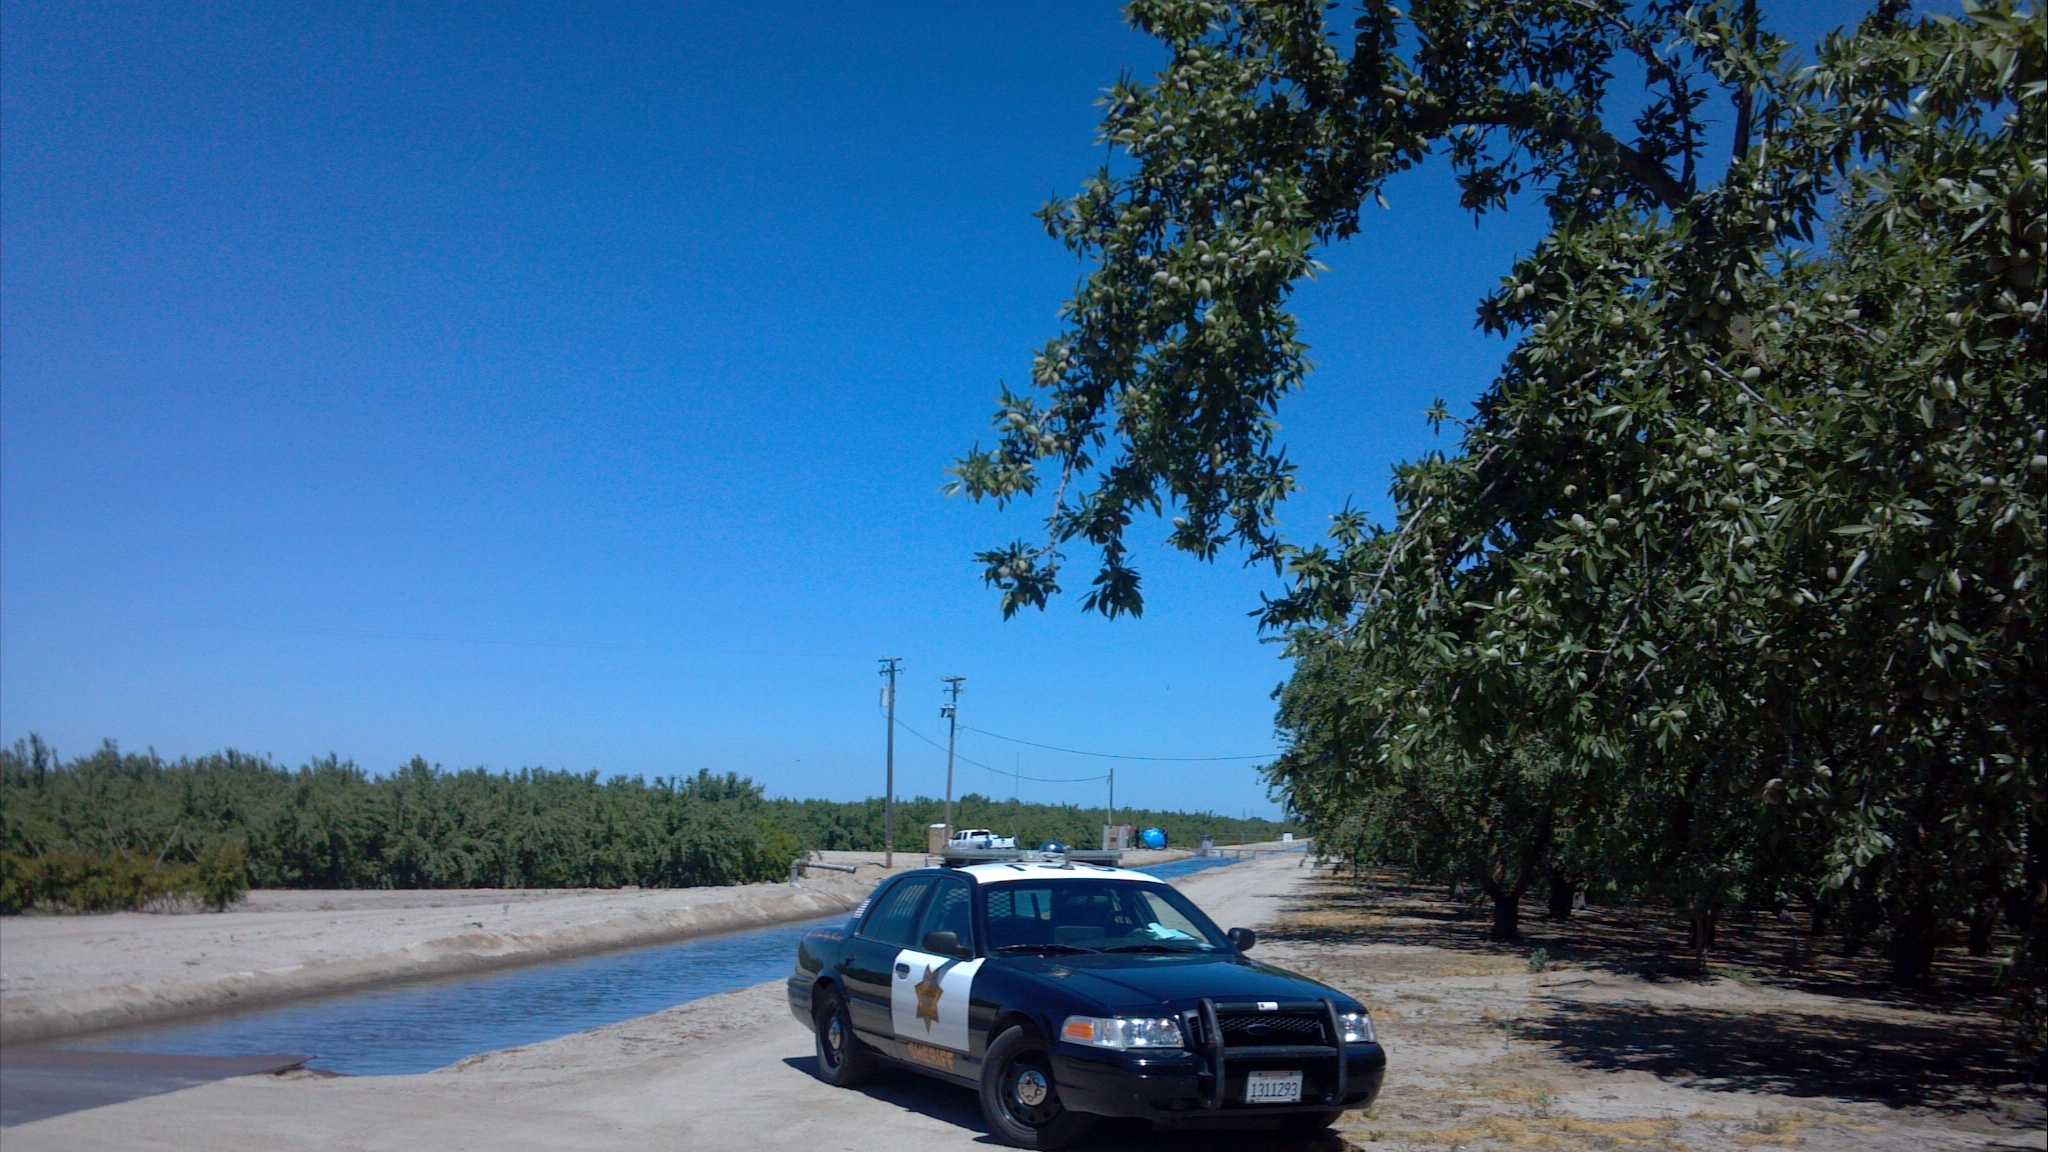 Sheriff's deputies are investigating the death of a person who was found inside a canal near Manteca. Read full story